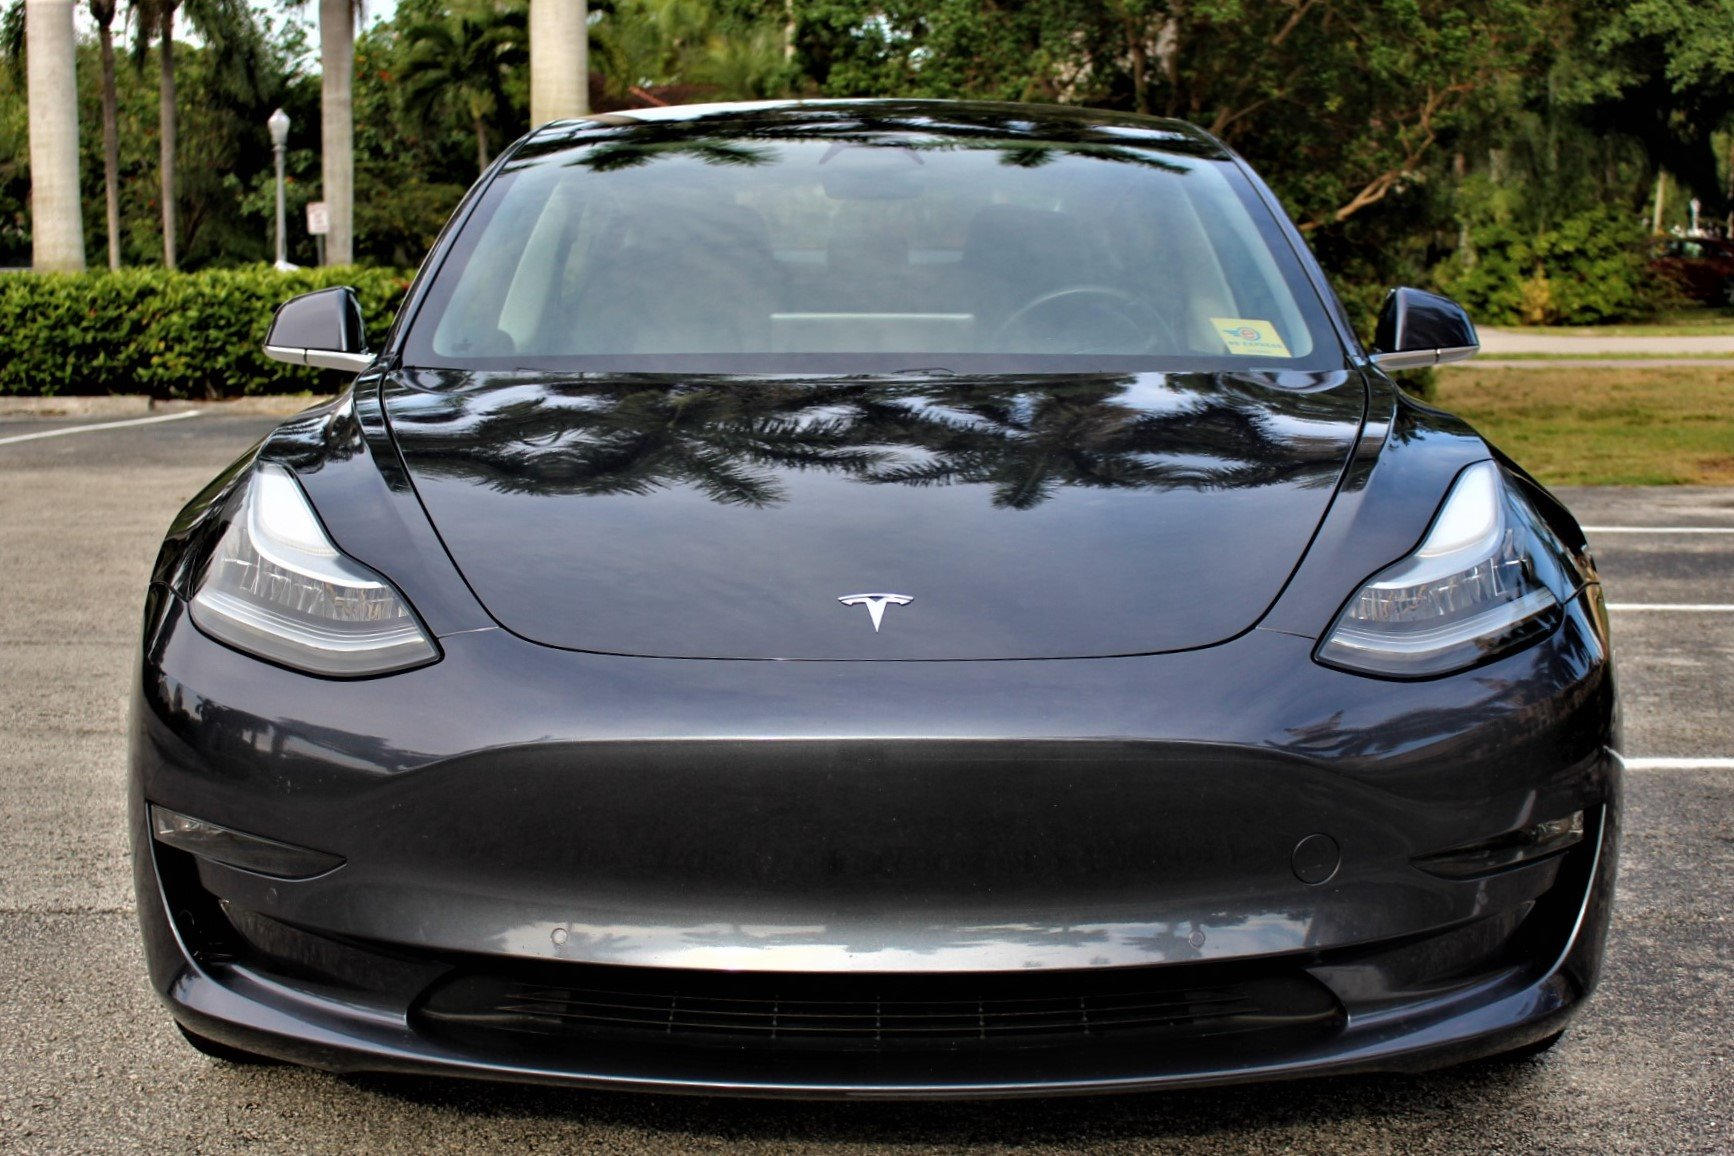 Used 2018 Tesla Model 3 Long Range for sale $37,850 at The Gables Sports Cars in Miami FL 33146 3